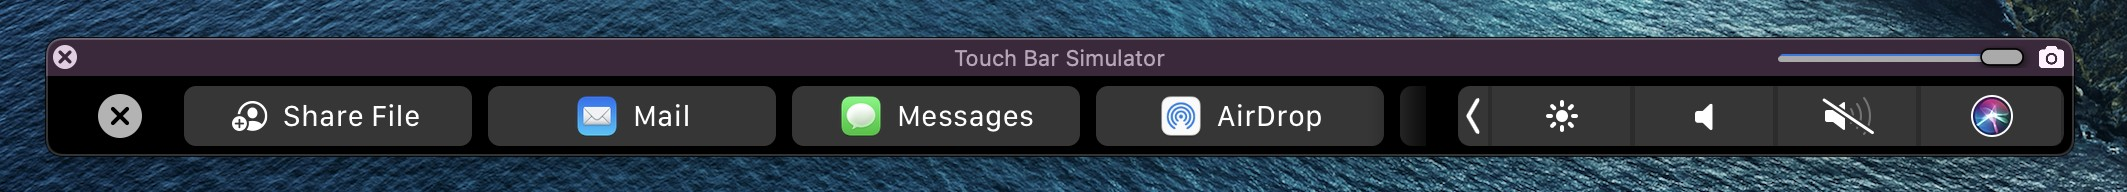 How to use Touch Bar on any Mac